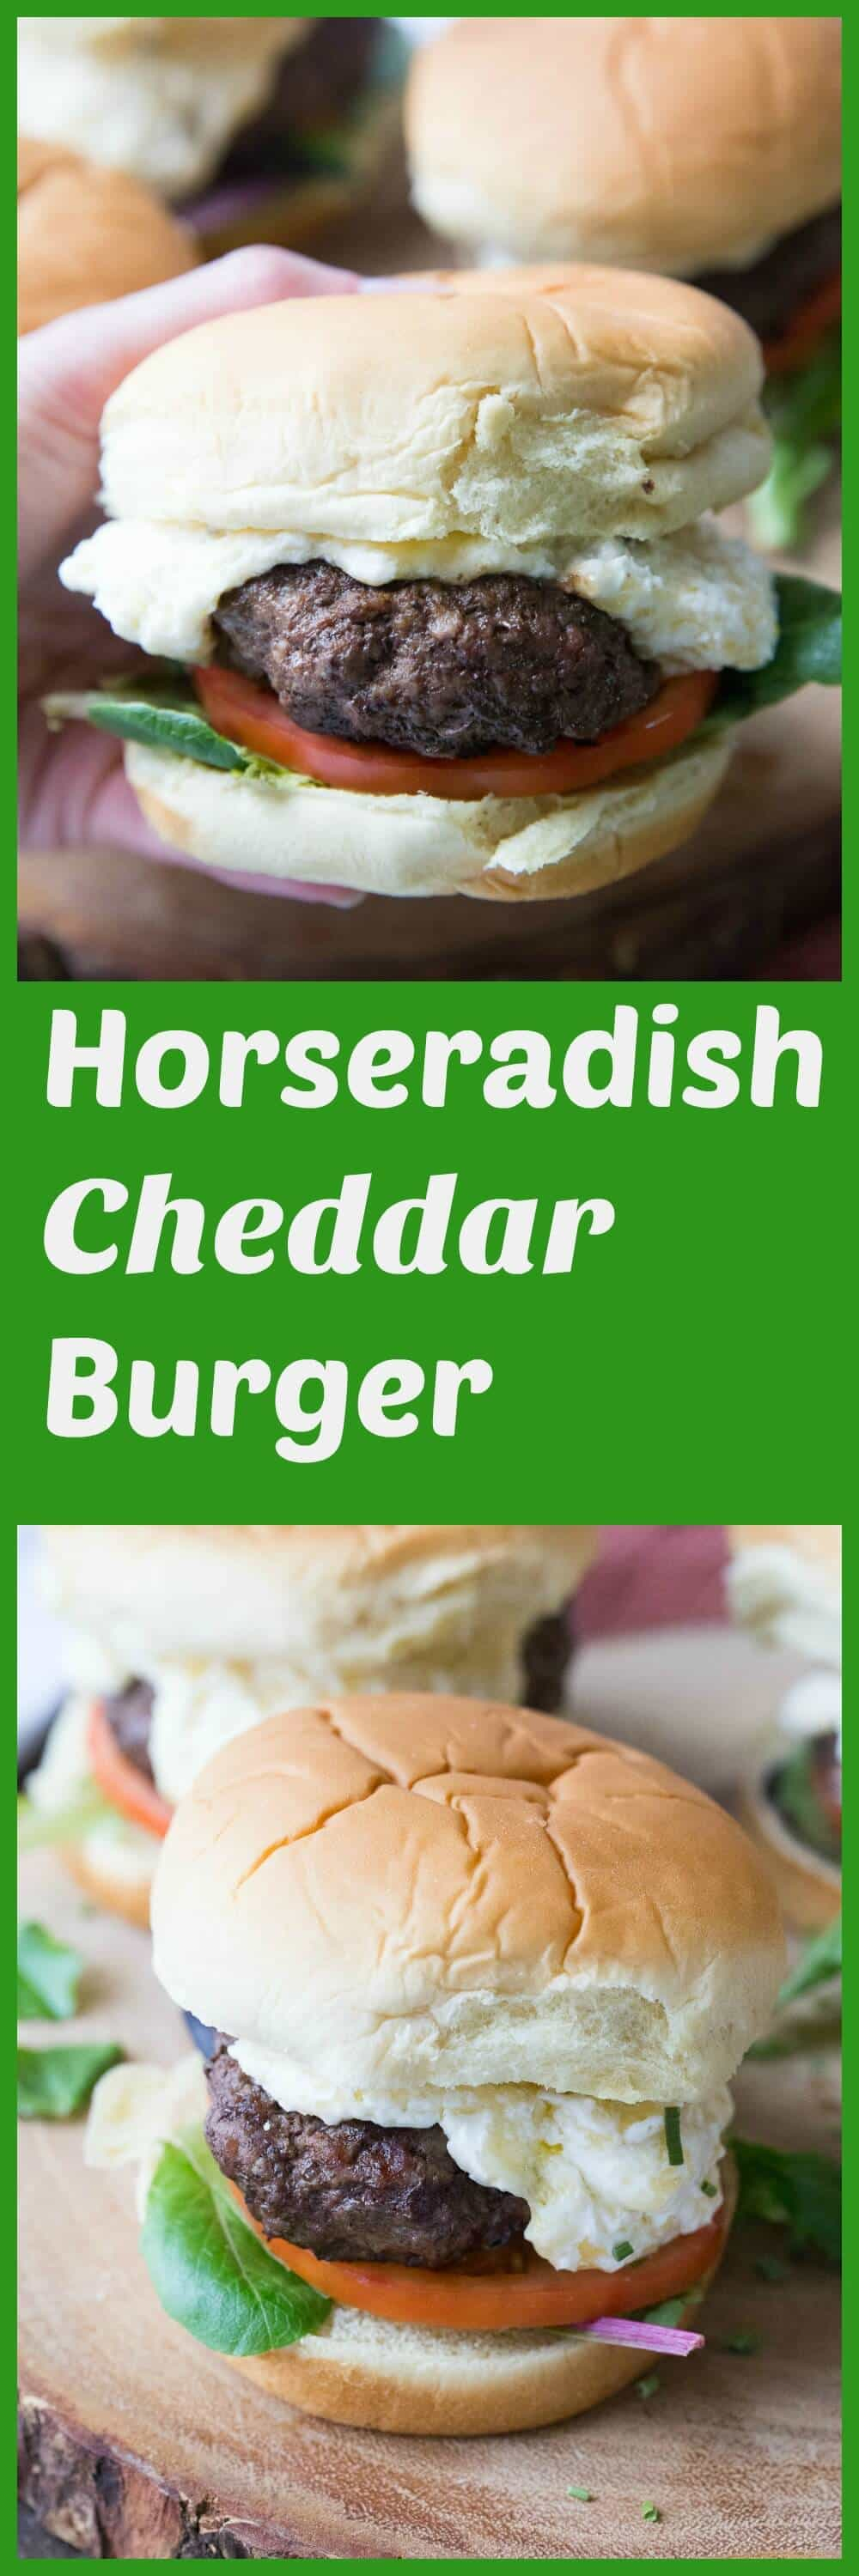 This horseradish cheddar burger is big on flavor! Juicy beef patties are covered in a creamy cheddar cheese speed, the taste is absolutely amazing!